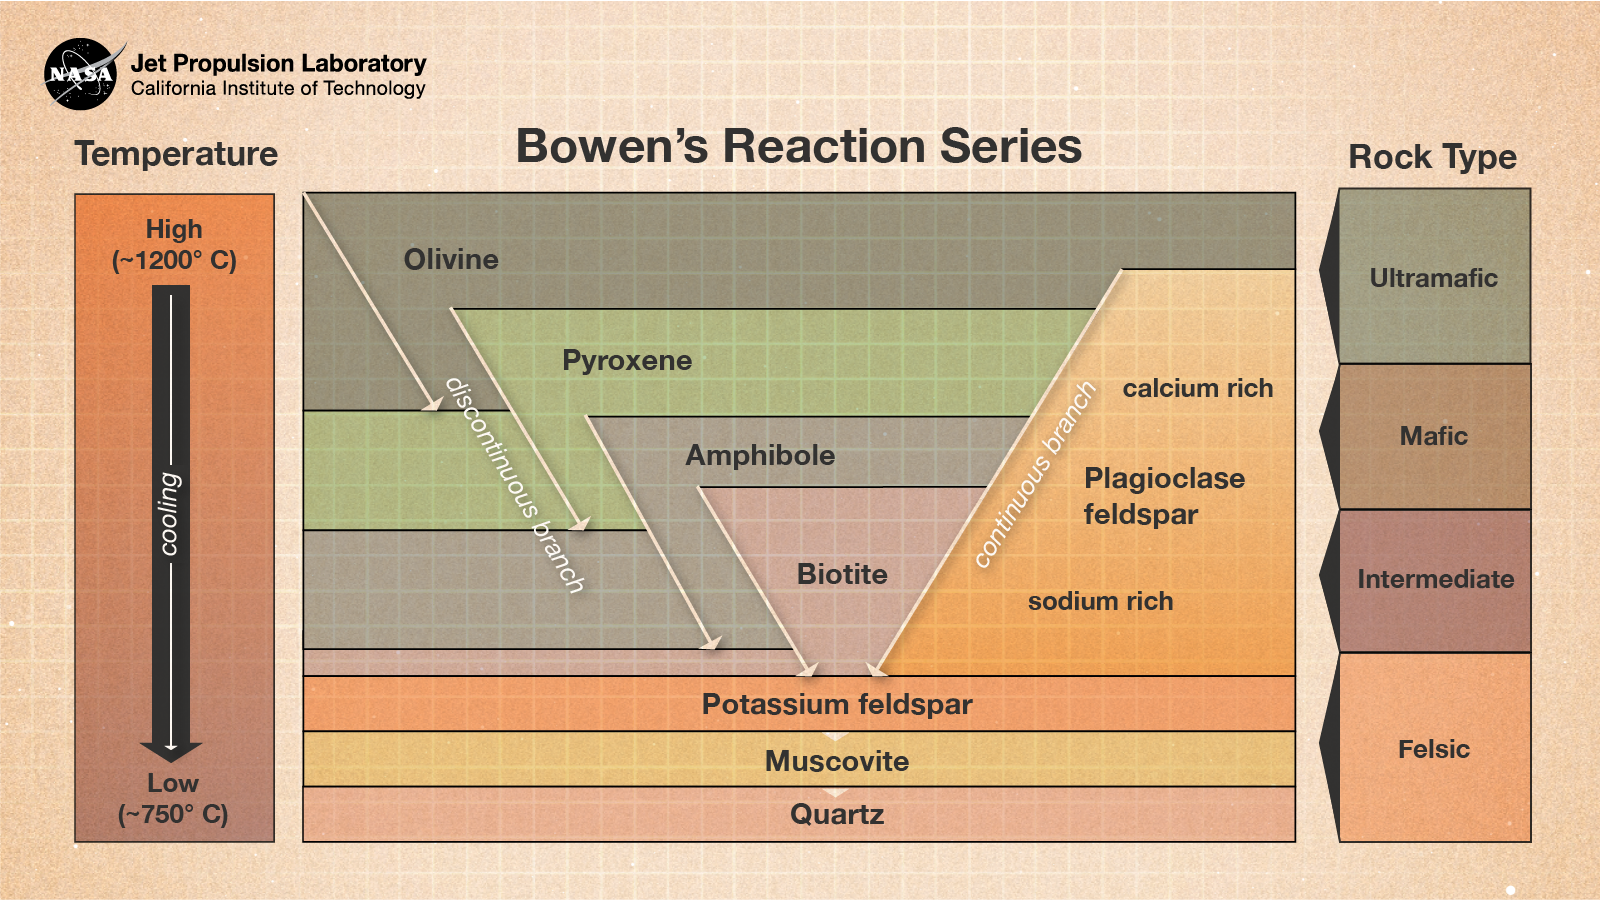 The Bowen's reaction series shows how as magma cools, it creates the silicate structures (from about 1,200 degrees Celsius to about 750 degrees Celsius and from ultramafic to mafic to intermediate to felsic) for olivine (utltramafic-mafic) plagioclase feldspar (ultramafic-felsic), pyroxene (ultramafic-intermediate), amphibole (mafic-intermediate), biotite (mafic-felsic), potassium feldspar (felsic), muscovite (felsic), and quartz (felsic).